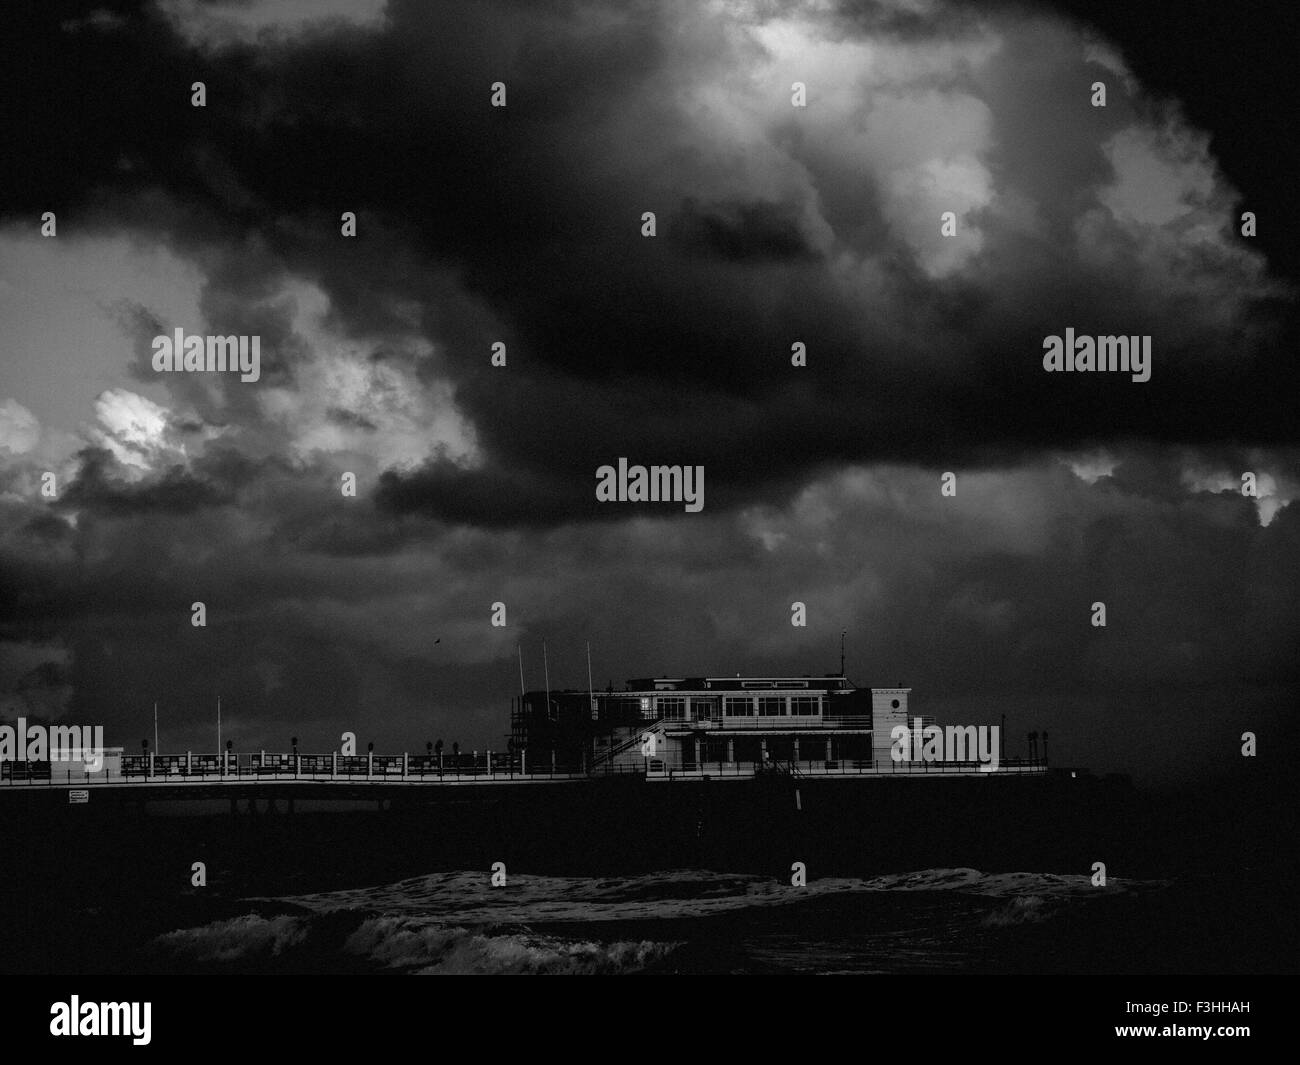 AJAXNETPHOTO. WORTHING, ENGLAND. - STORMY WEATHER - SEASIDE RESORT PIER BATTERED BY AUTUMN STORMS. PHOTO:JONATHAN - Stock Image